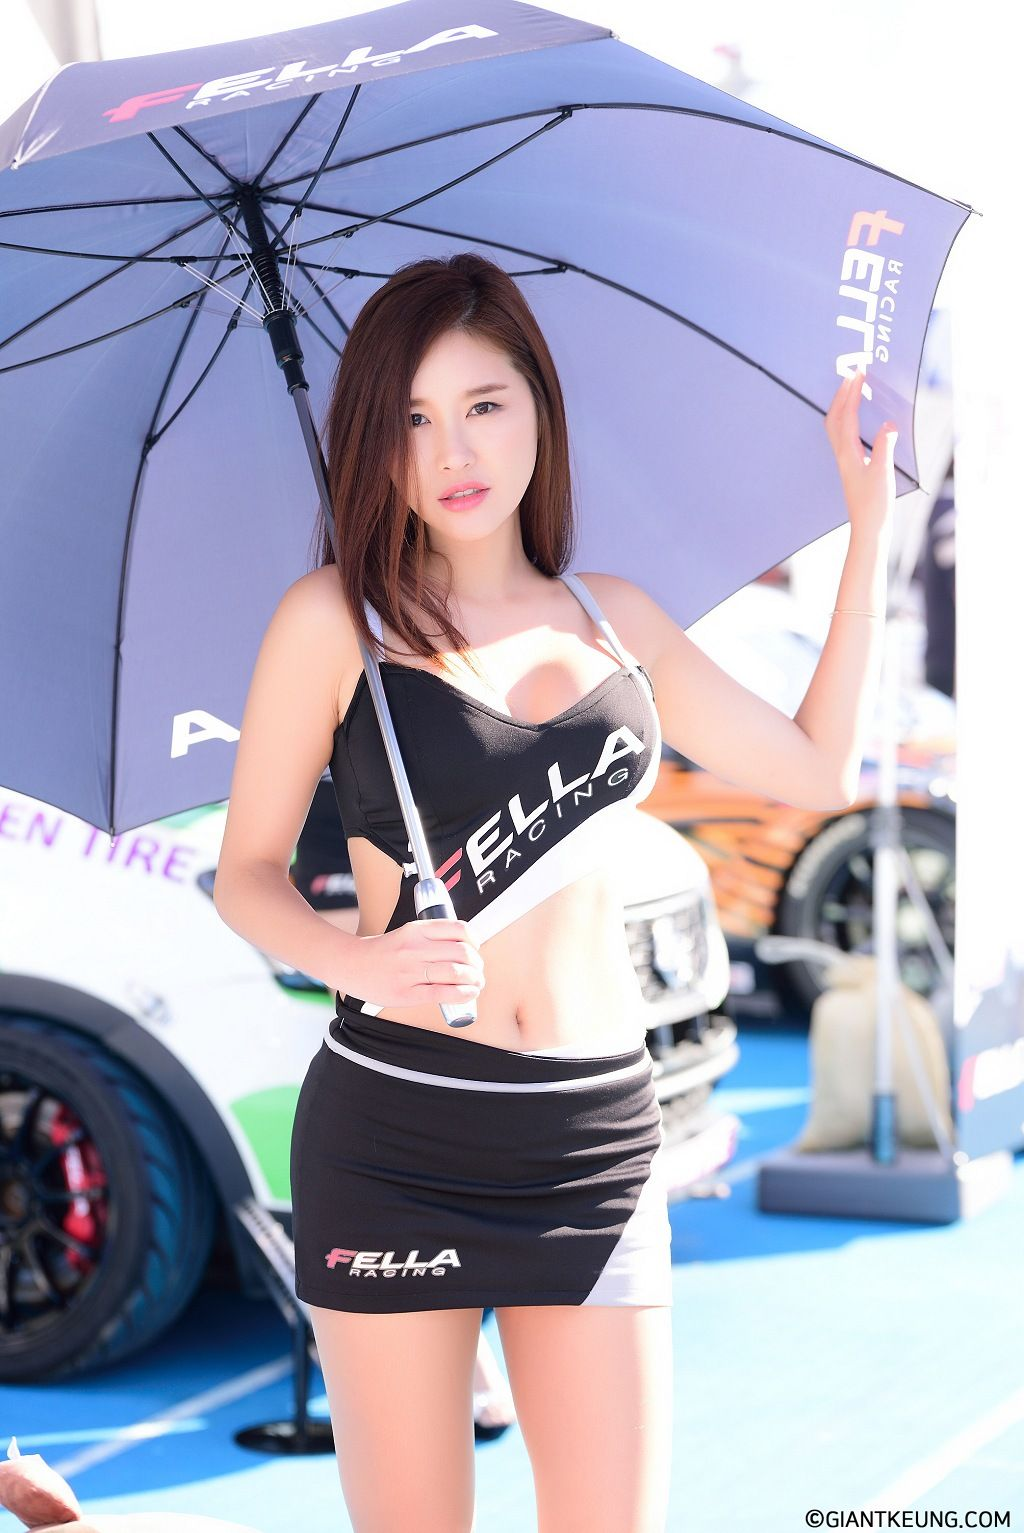 Image-Korean-Racing-Model-Cheon-Se-Ra-At-Incheon-Korea-Tuning-Festival-TruePic.net- Picture-10